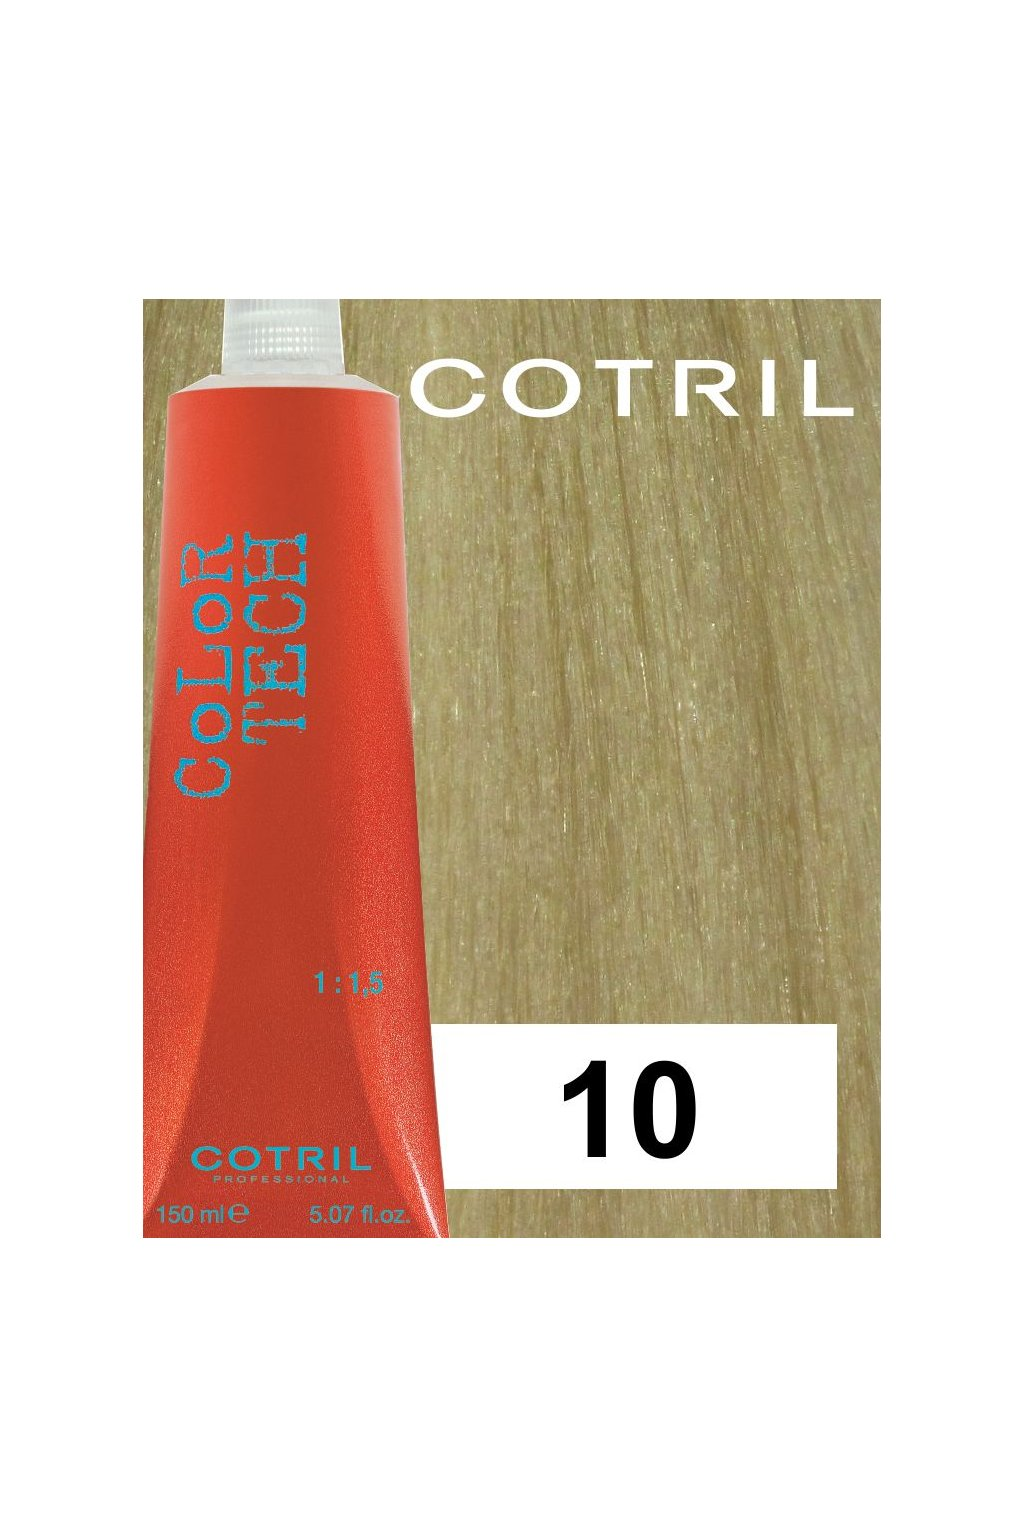 10 ct cotril